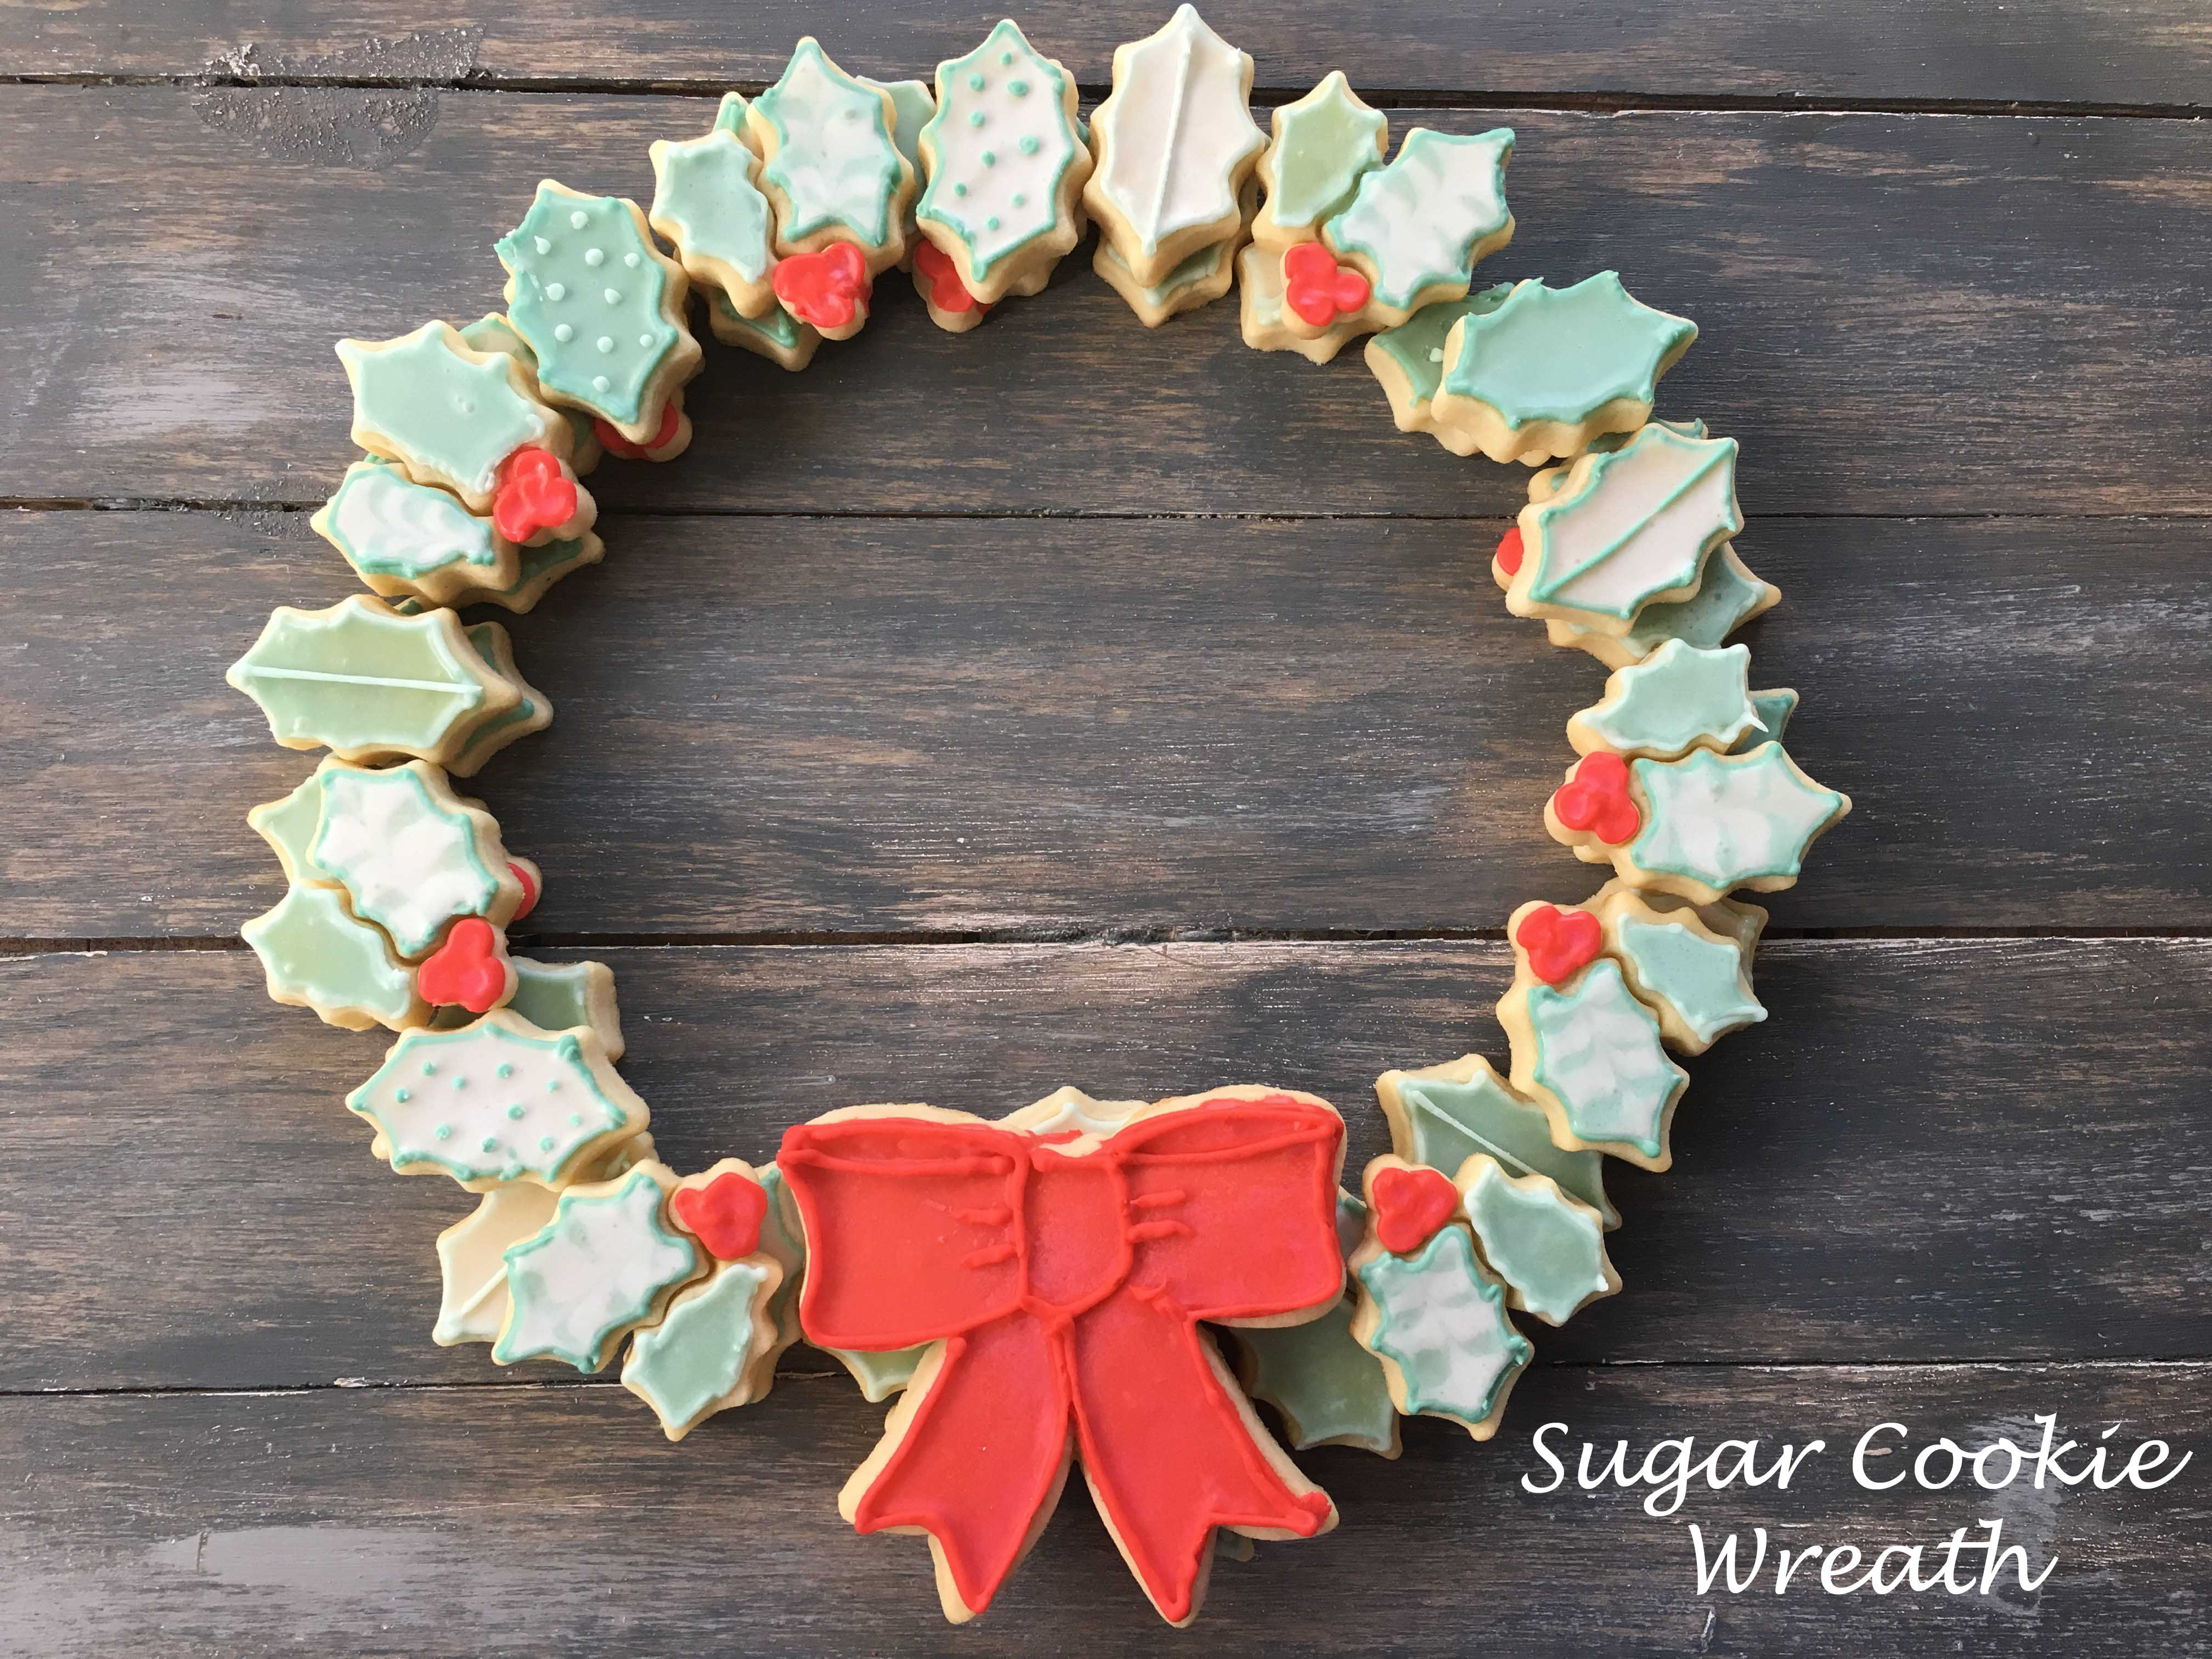 sugar-cookie-wreath